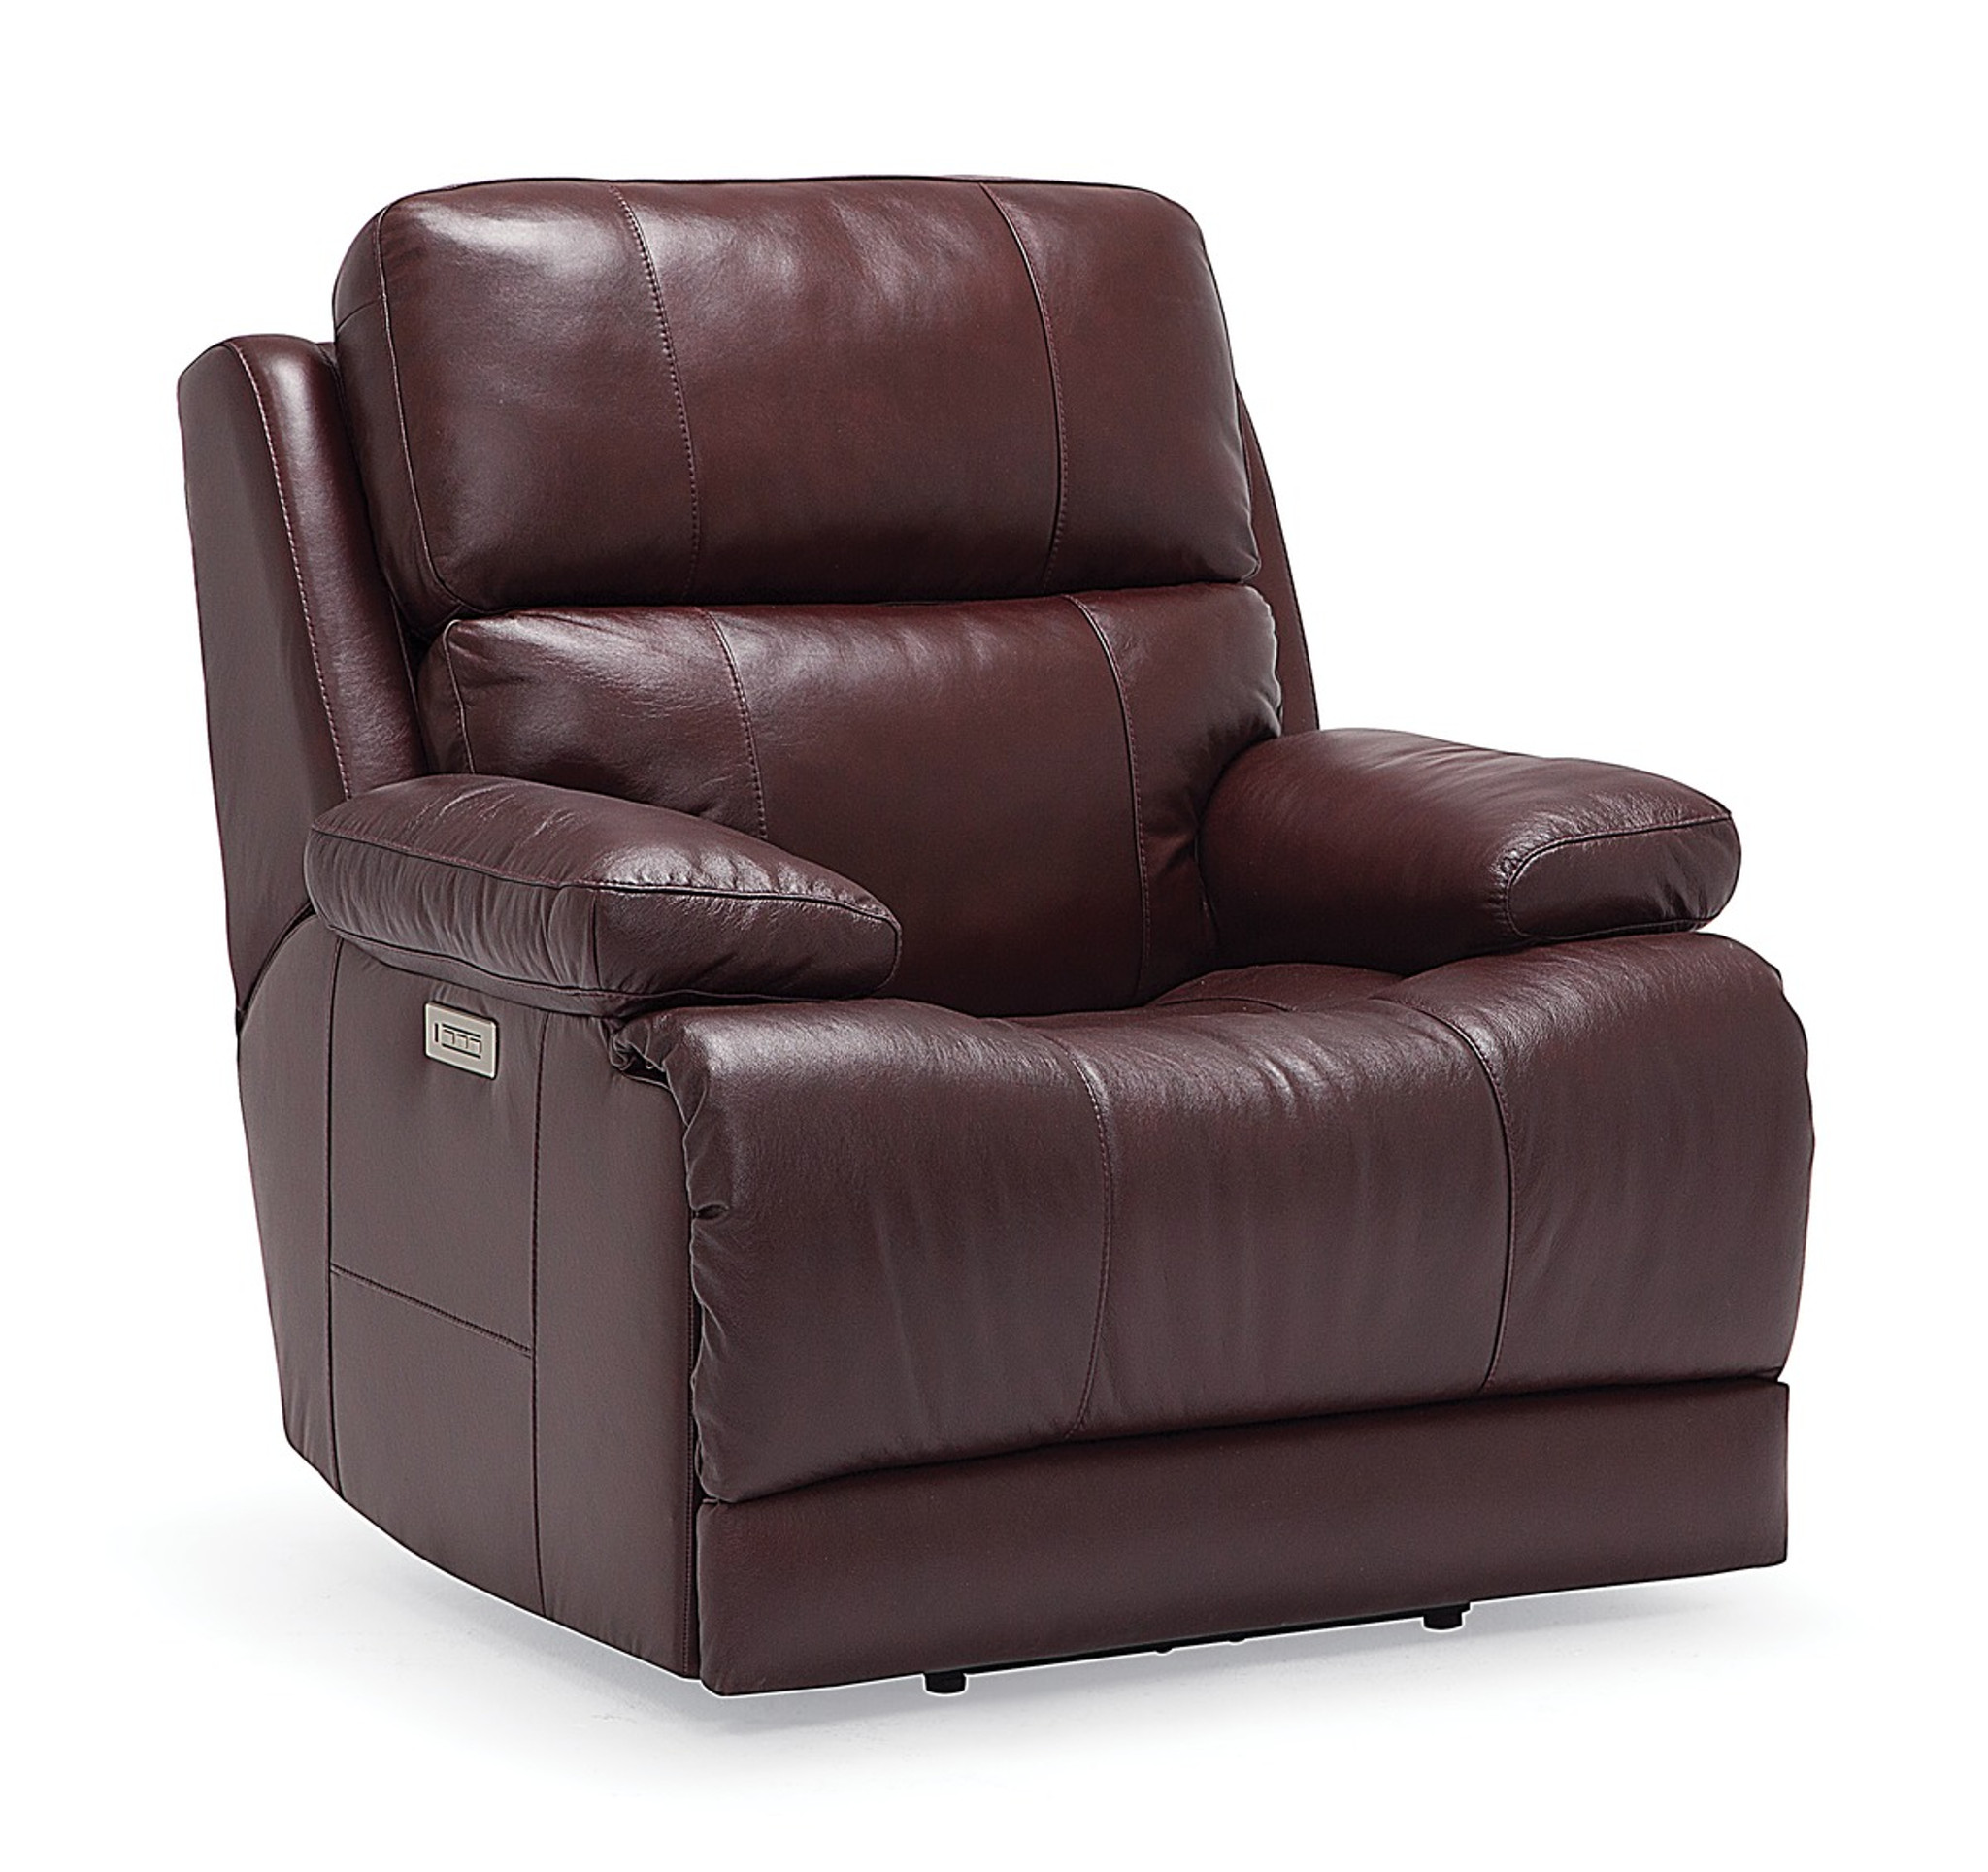 Palliser Leather Power Head Rest Recliner Sofa Model